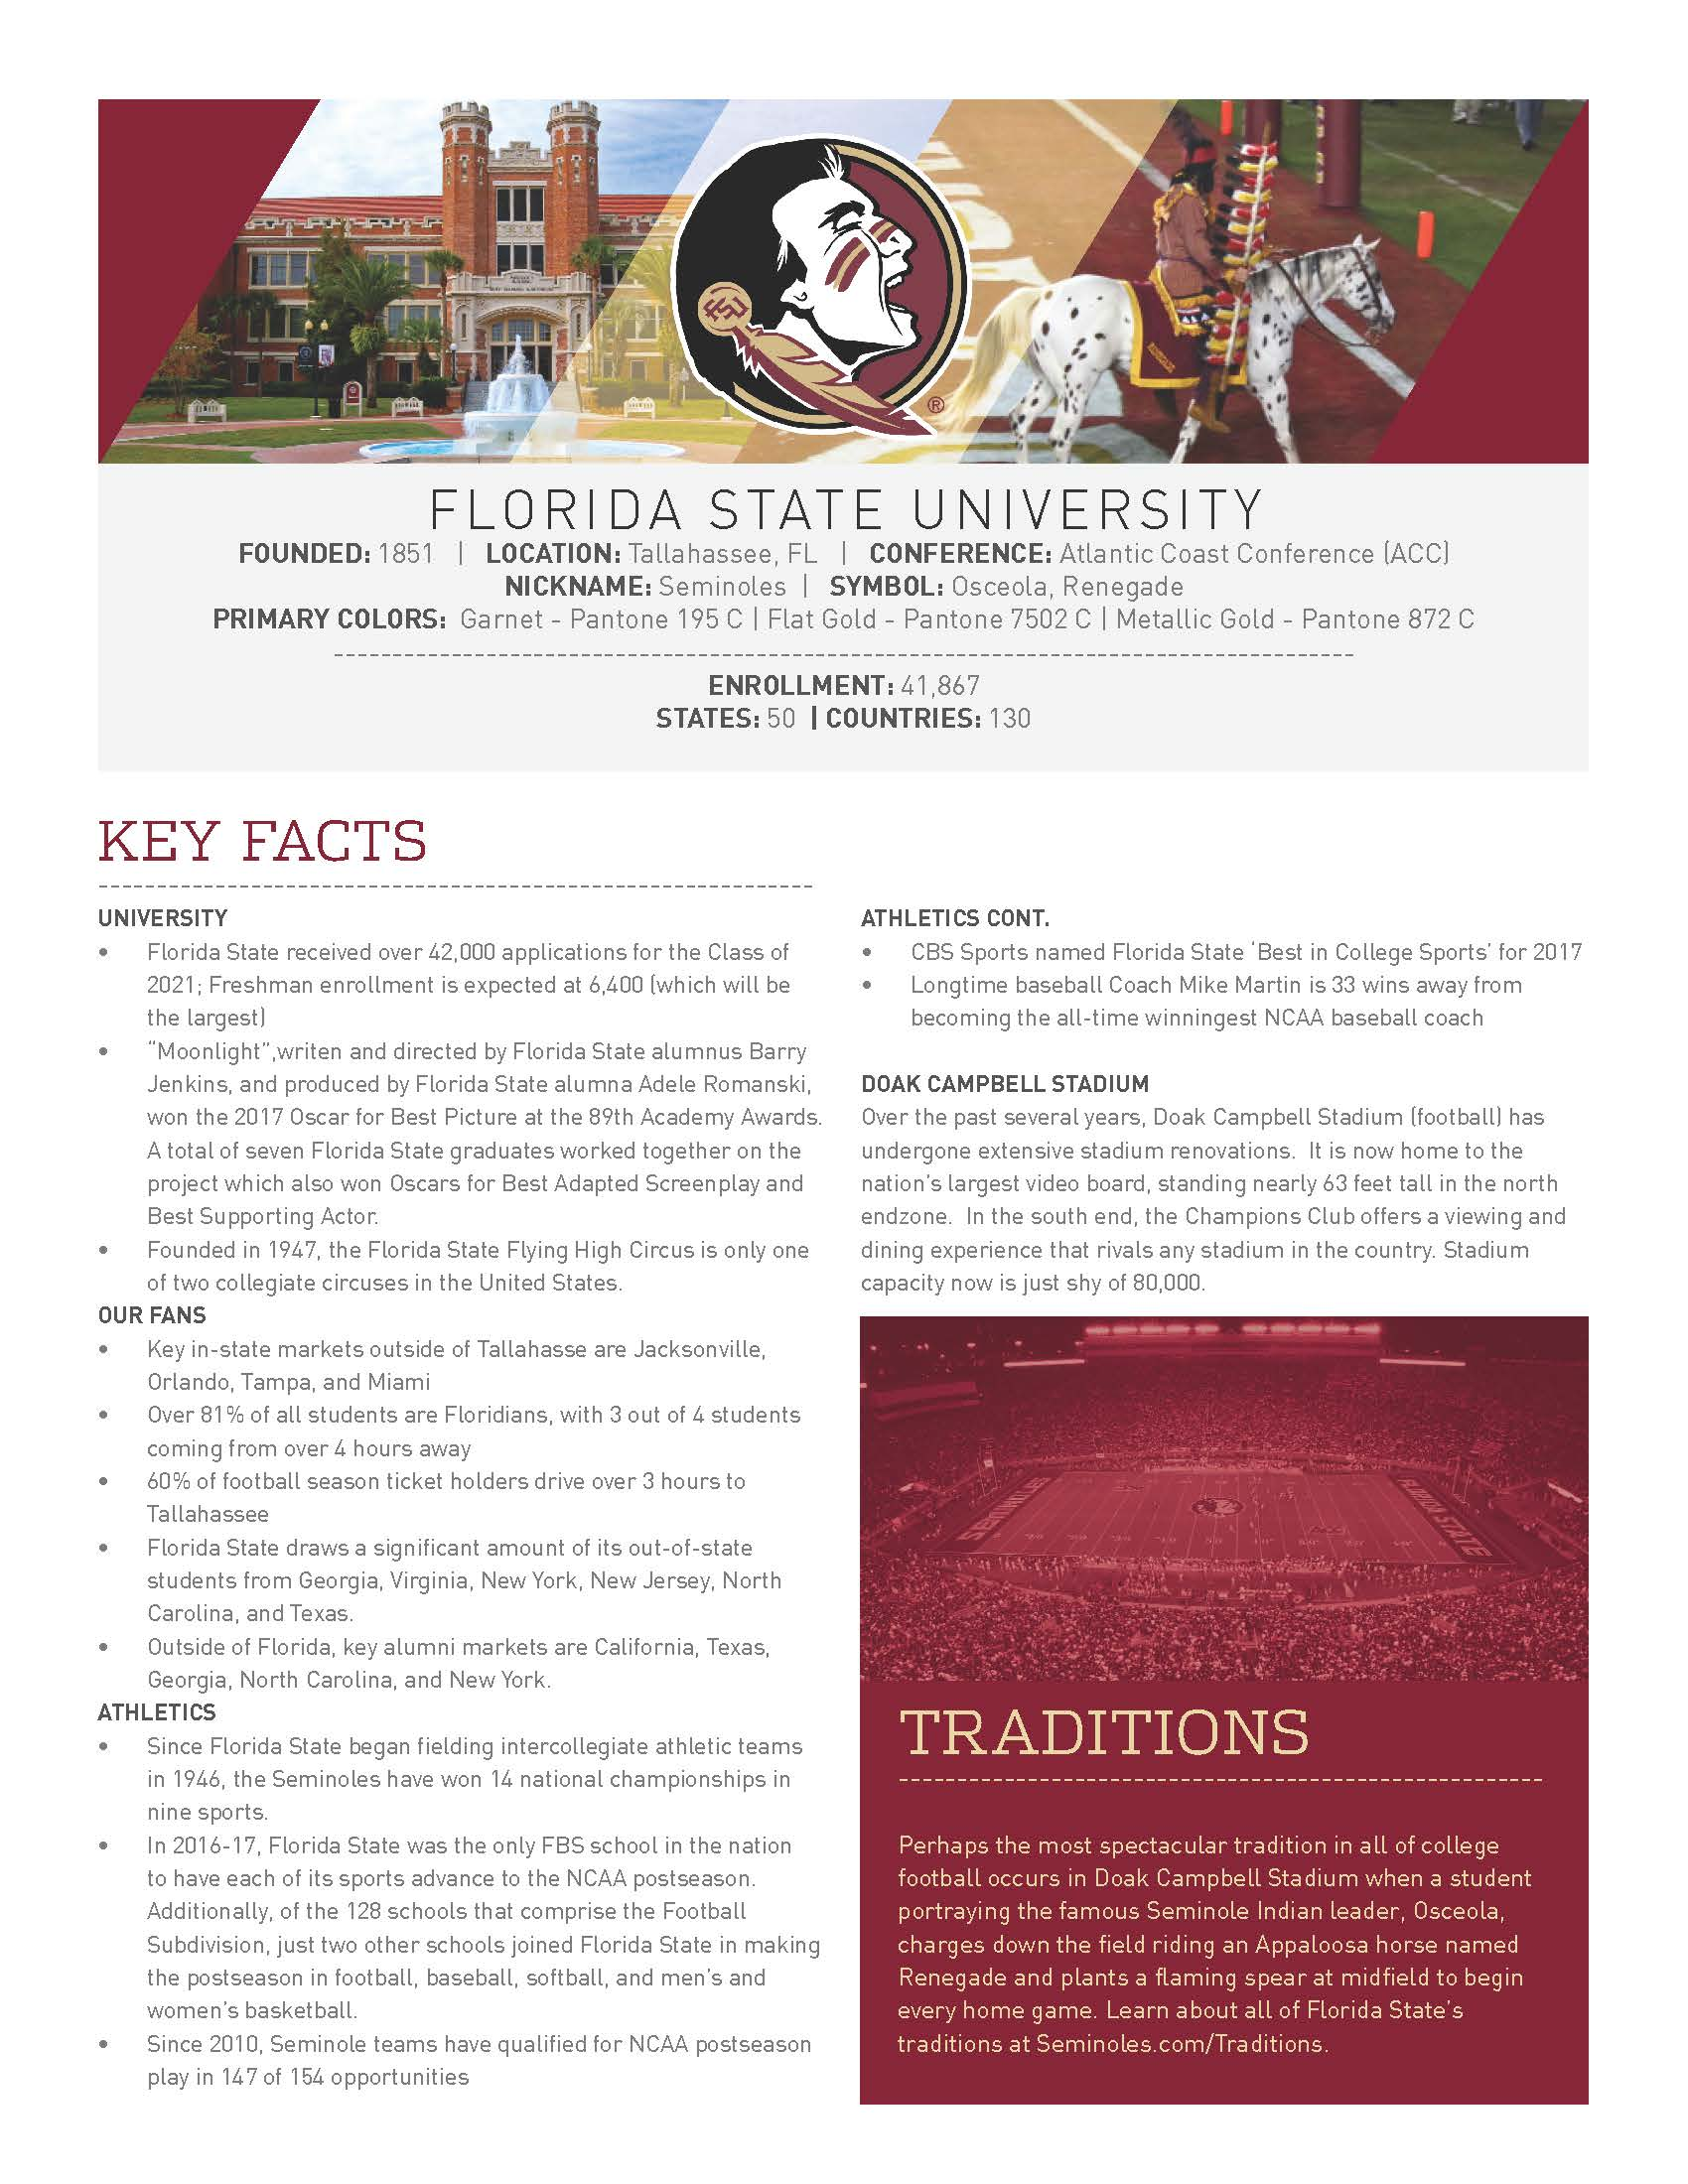 Florida State at a glance page 1